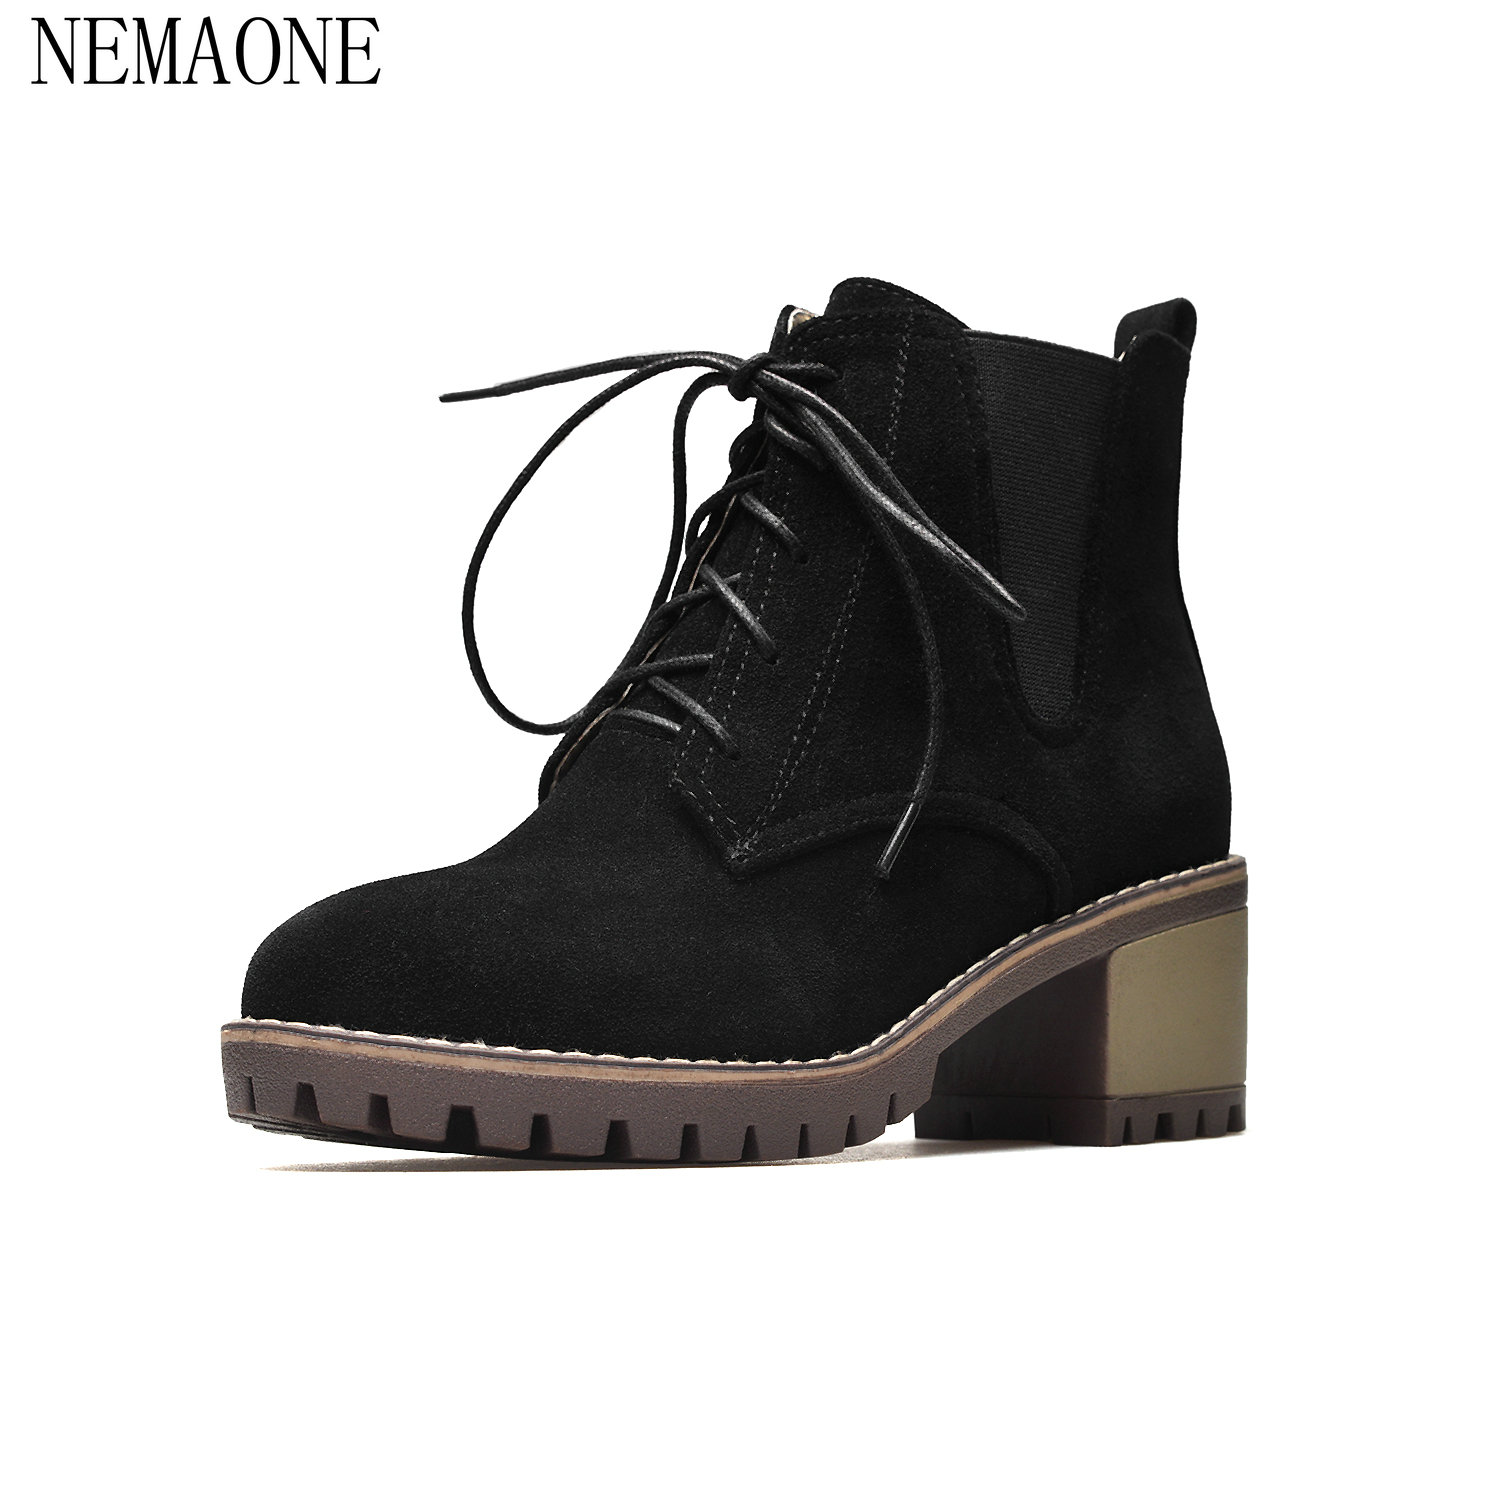 NEMAONE ankle boots concise round toe side keep warm well leisure modern campus fashion trend lace-up autumn women shoes front lace up casual ankle boots autumn vintage brown new booties flat genuine leather suede shoes round toe fall female fashion